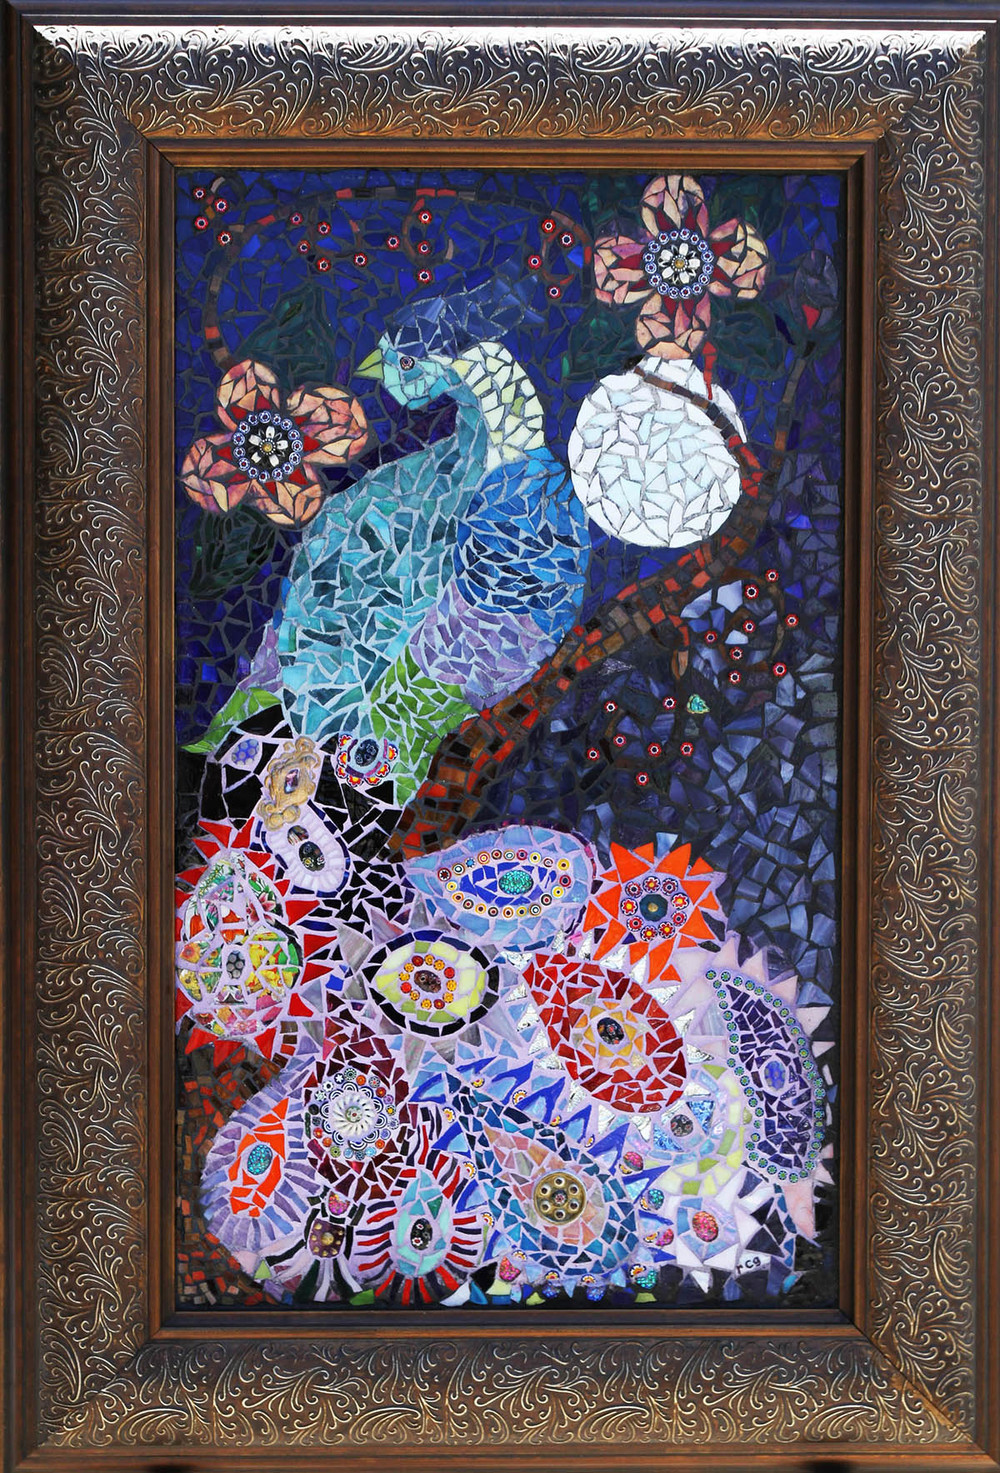 peacock mosaic copy1.jpg